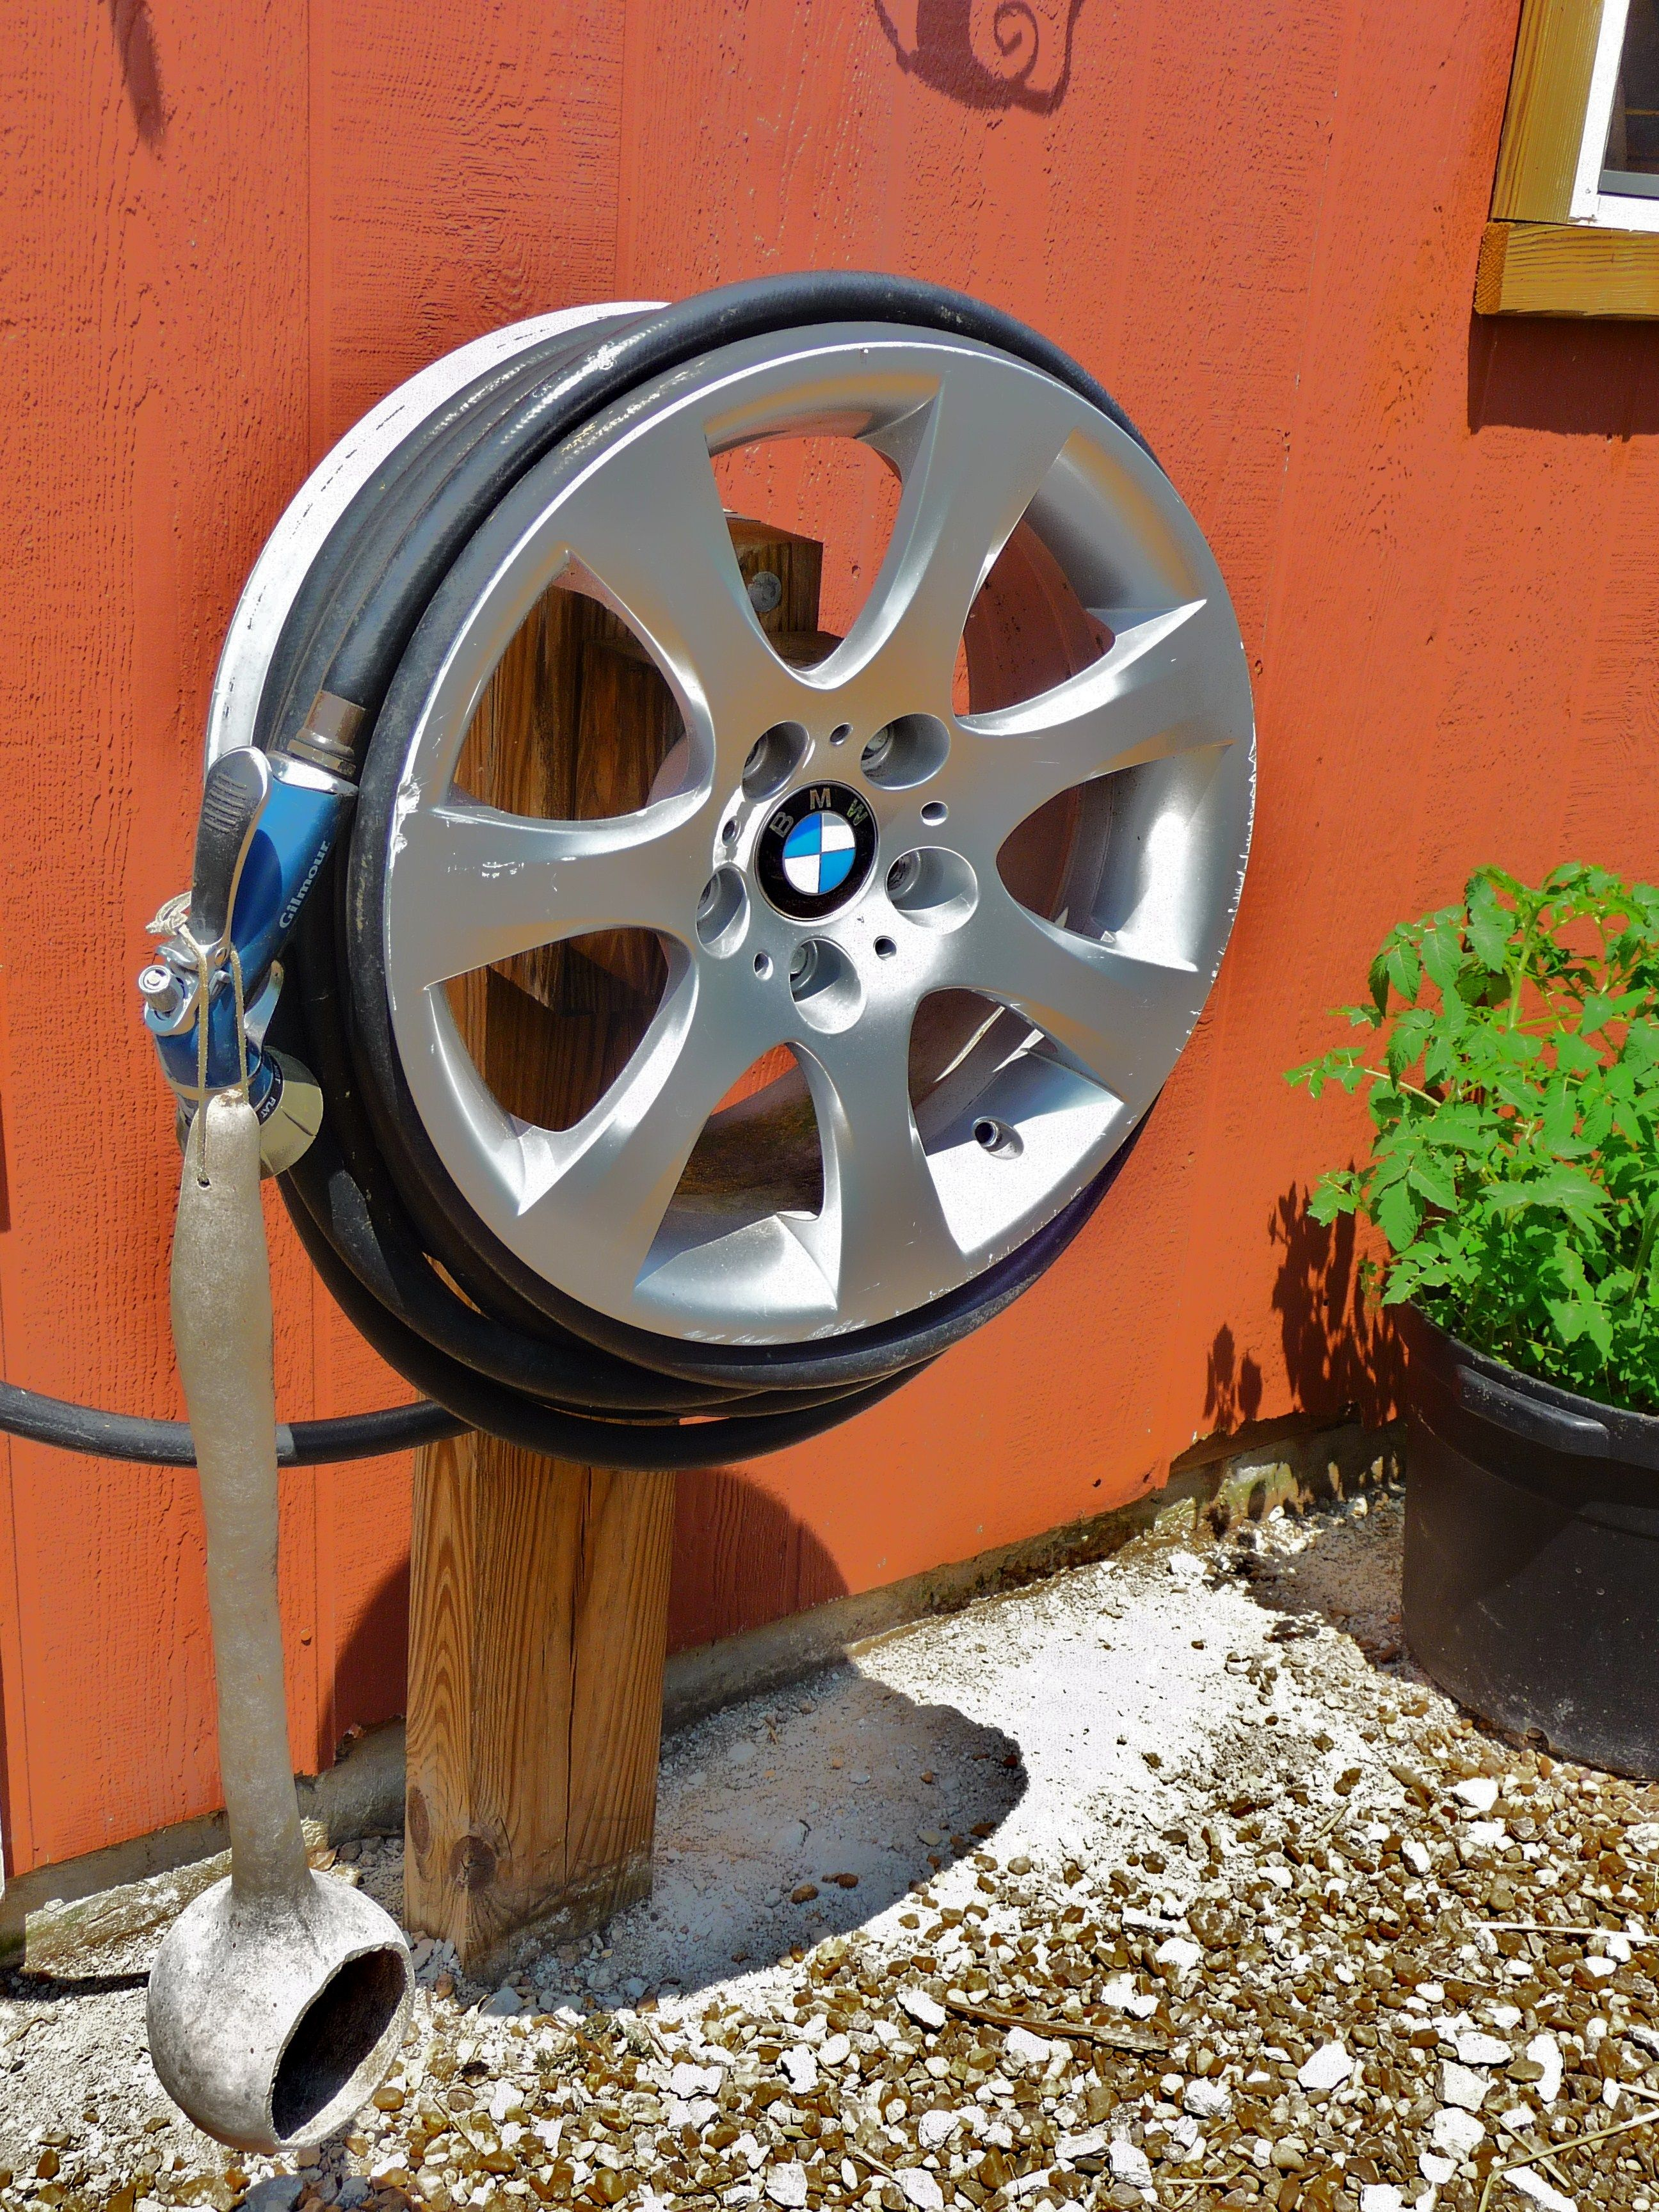 BMW Hub Cap upcycle - Hose Reel Upcycle Car Parts - Reuse Recycle Repurpose DIY DIY using parts from Cars Motorcycles Trucks and more. & BMW Hub Cap upcycle - Hose Reel Upcycle Car Parts - Reuse Recycle ...